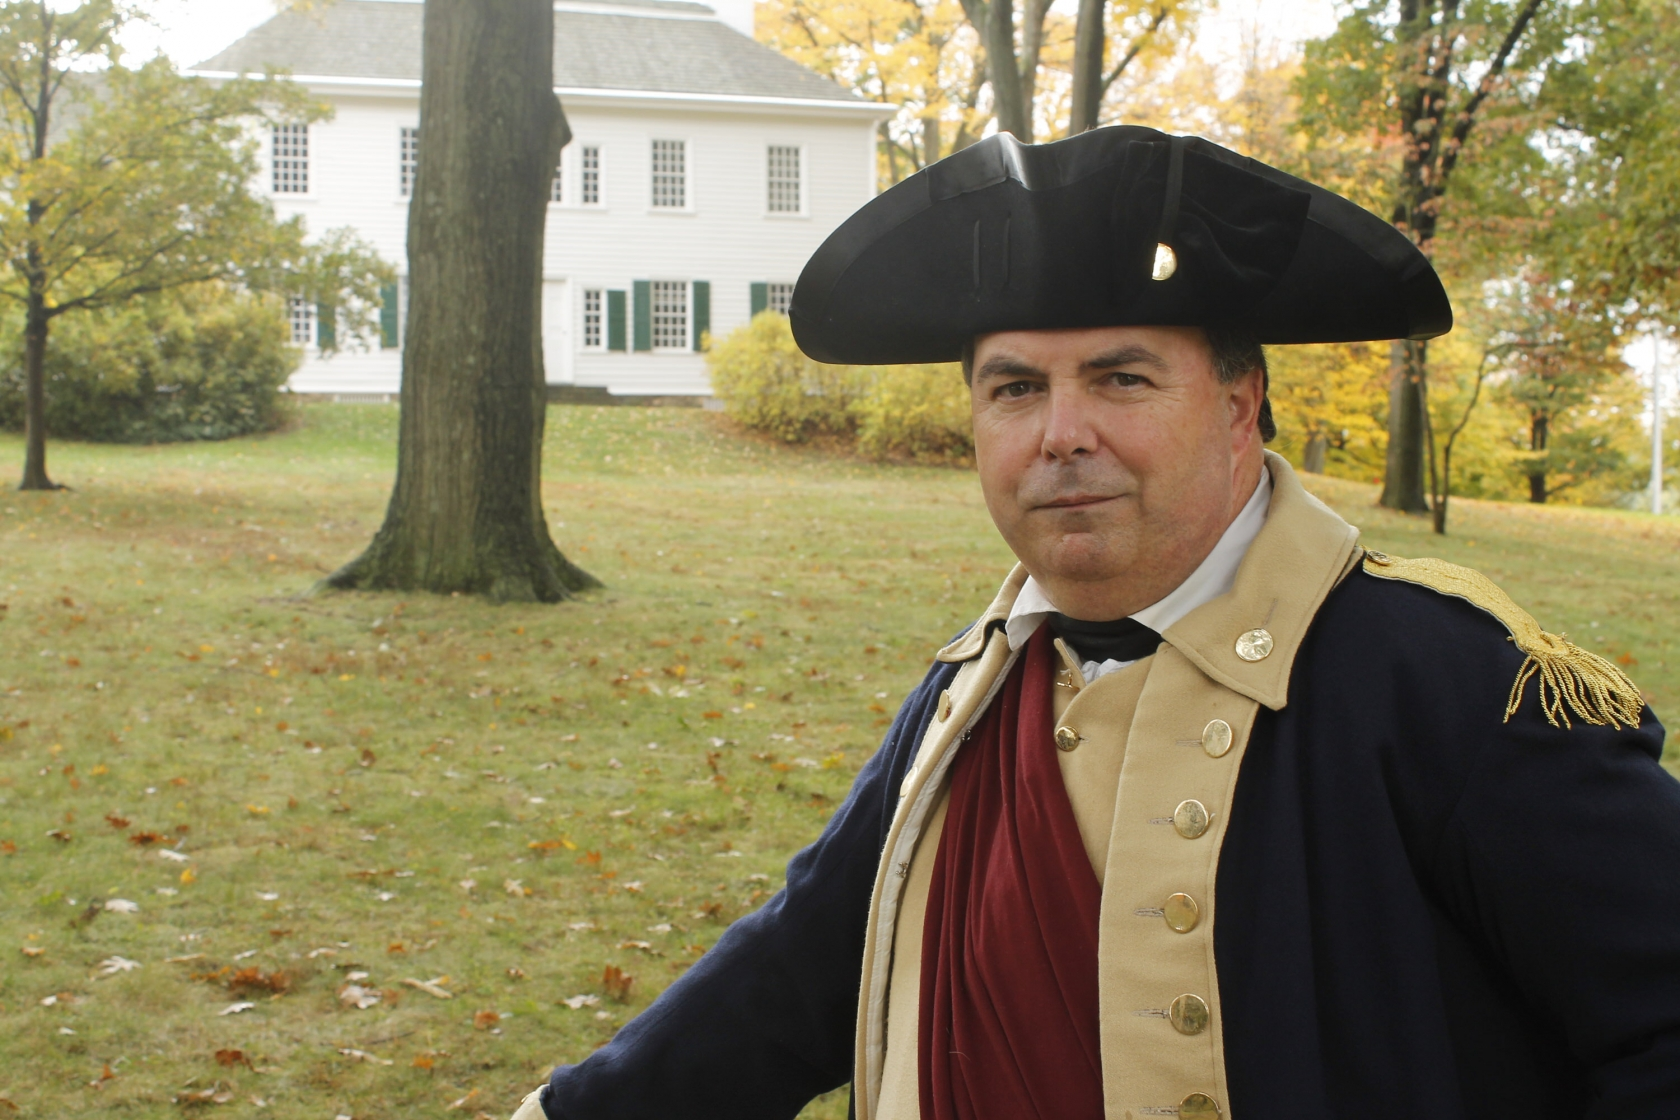 Man wearing Revolutionary War outfit